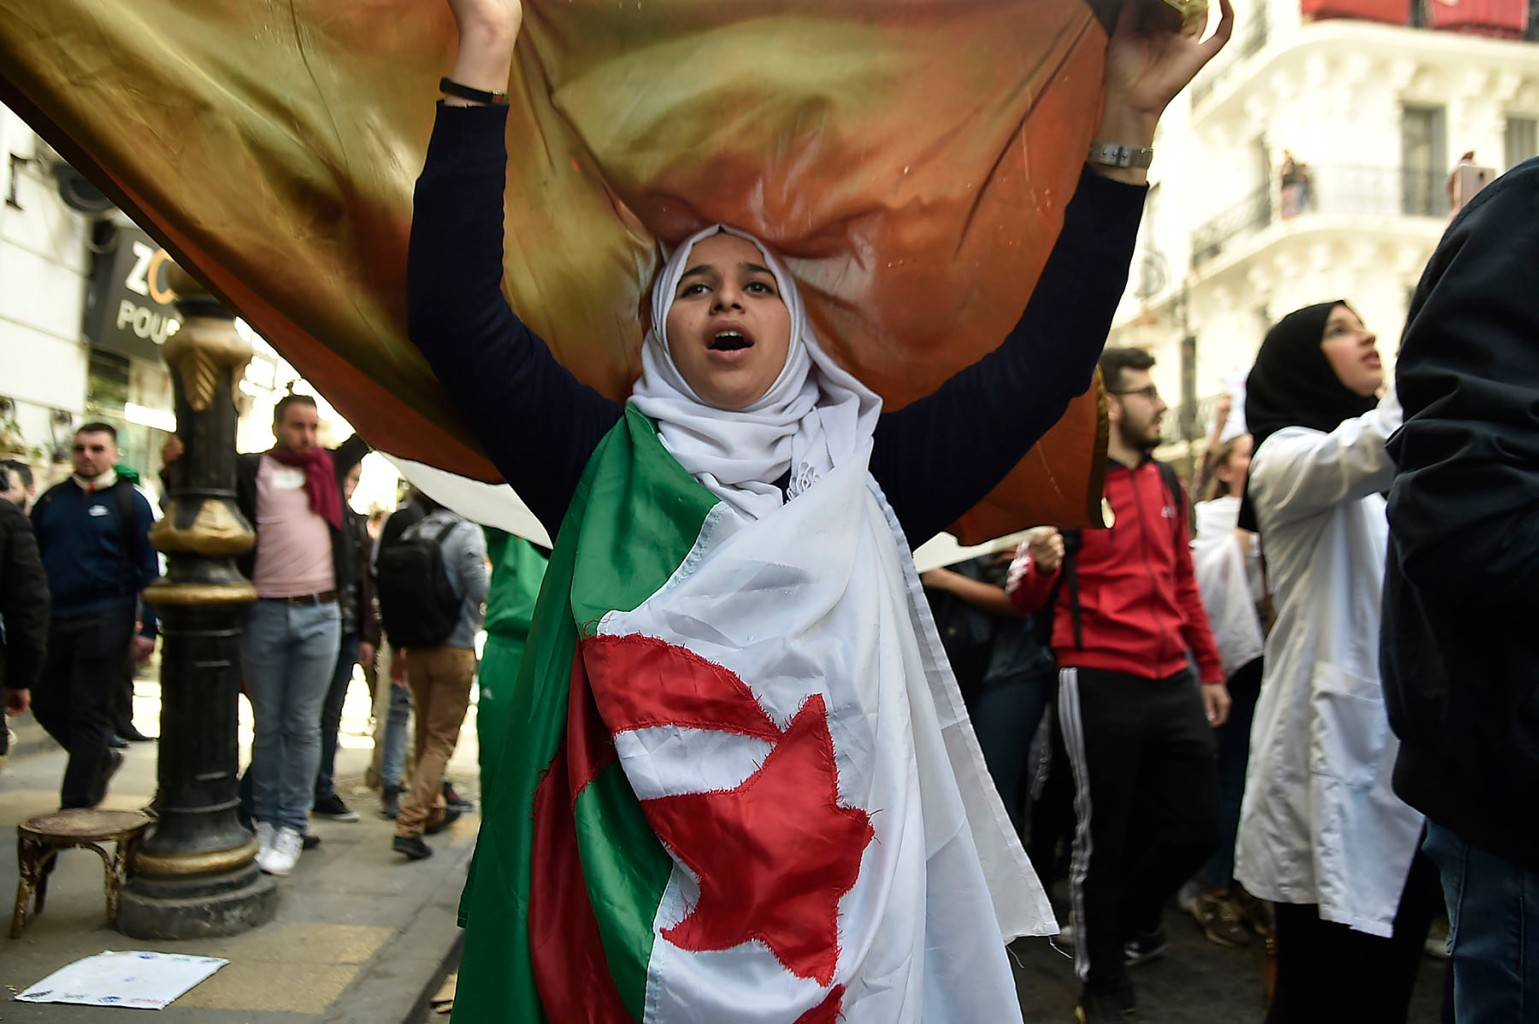 An Algerian student demonstrates in Algiers on March 5. RYAD KRAMDI/AFP/Getty Images